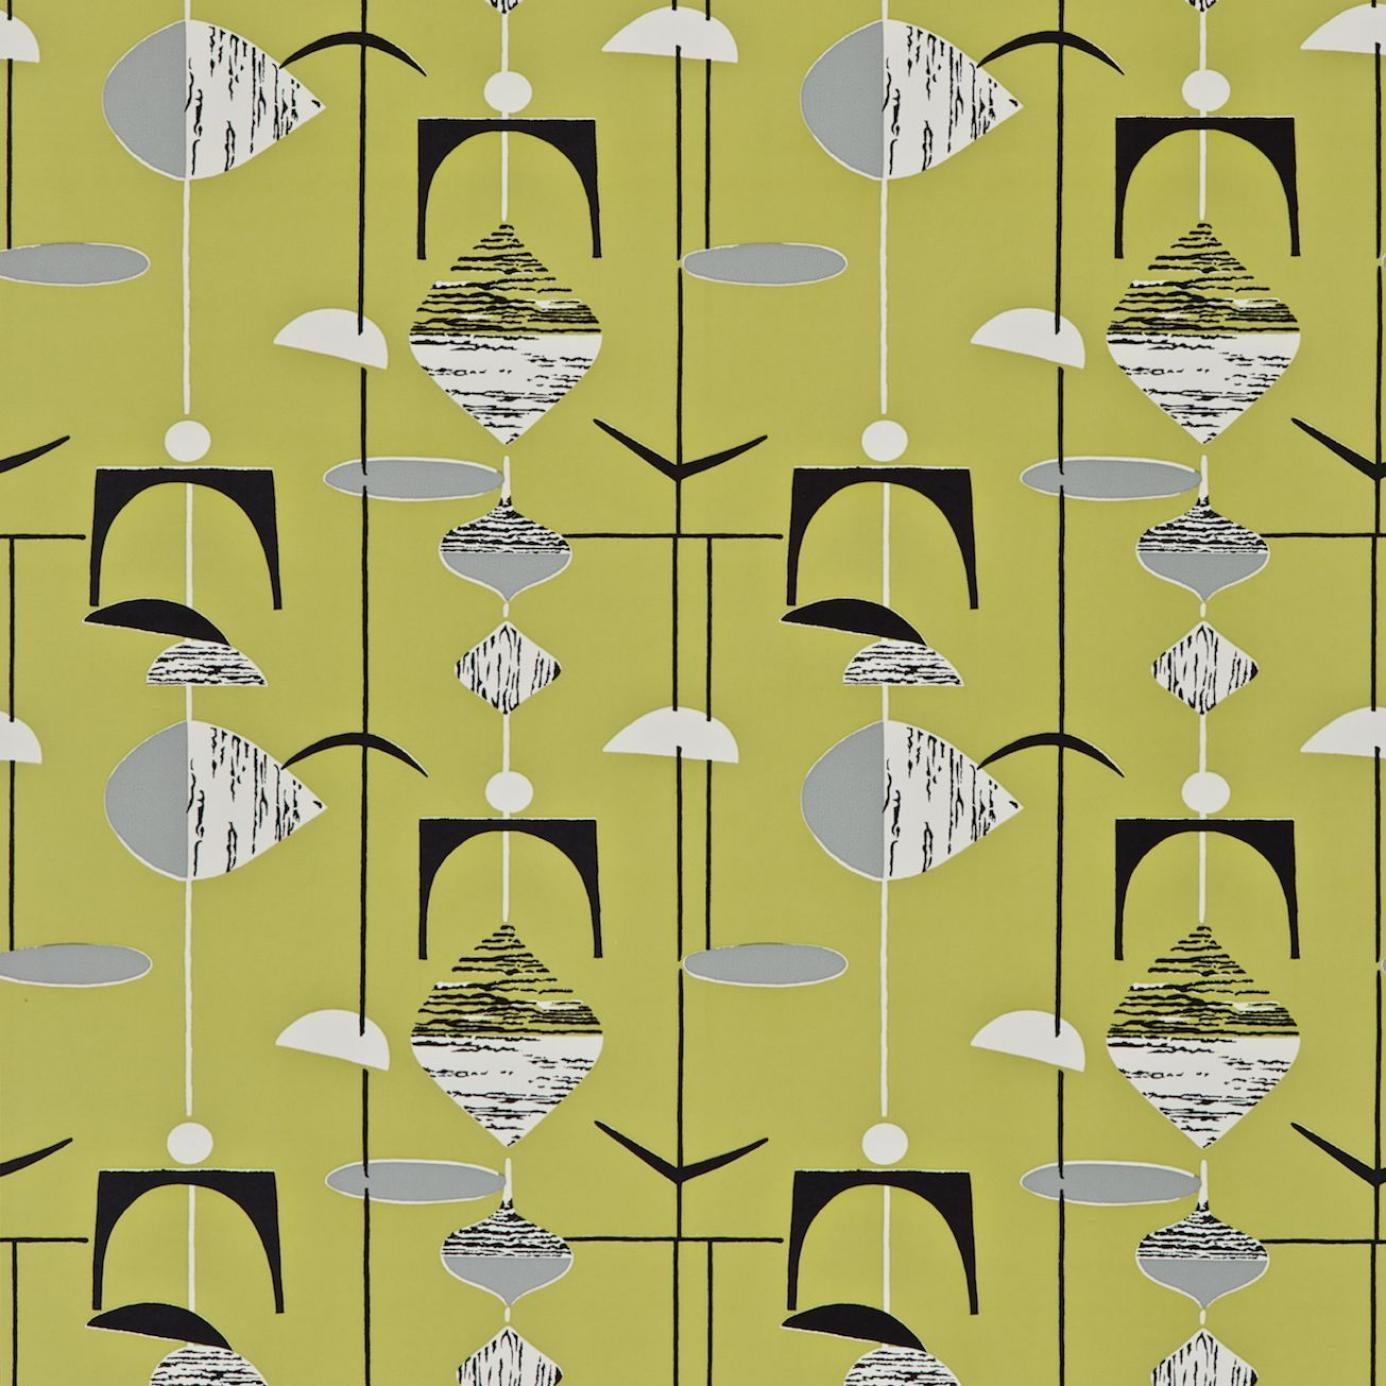 Designers Guild Cushions Uk picture on Designers Guild Cushions Uksandfif210216_mobiles_wallpaper_citrus_black_sanderson_50s_wallpapers_collection with Designers Guild Cushions Uk, sofa ebcc3793b3579e8b23a8b659327b3d52